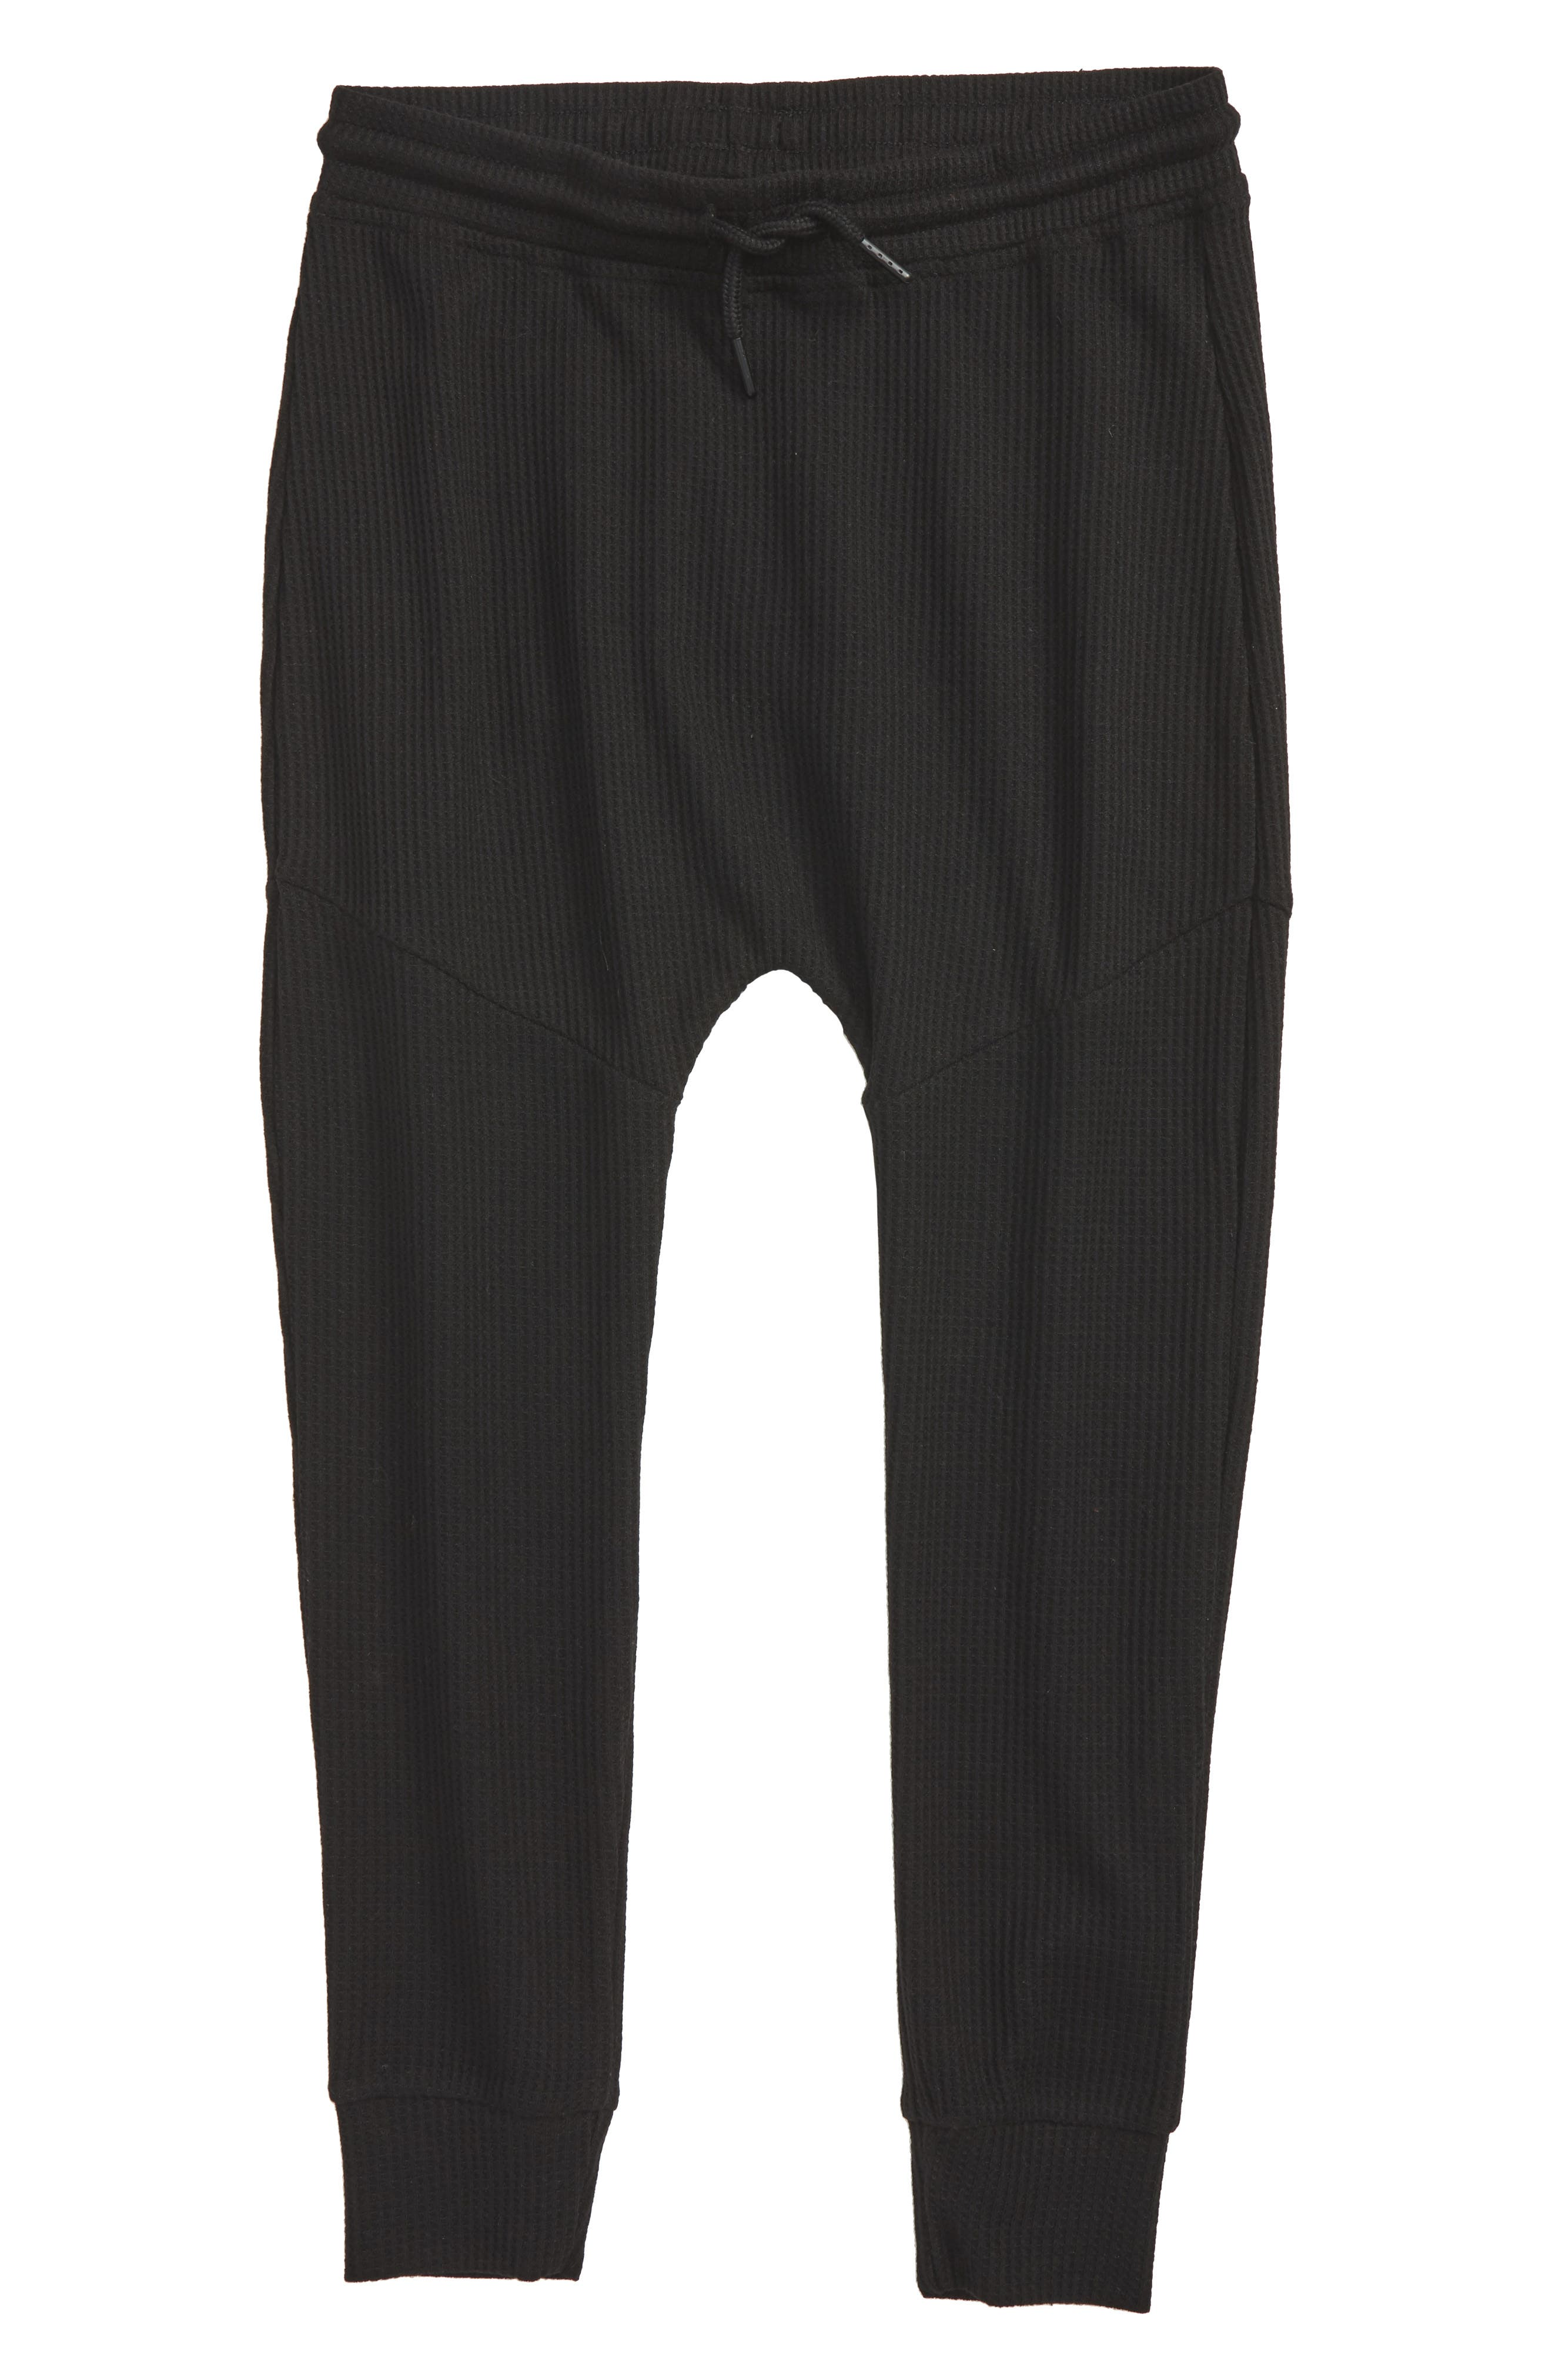 Alternate Image 1 Selected - Superism Jude Thermal Knit Jogger Pants (Big Boys)